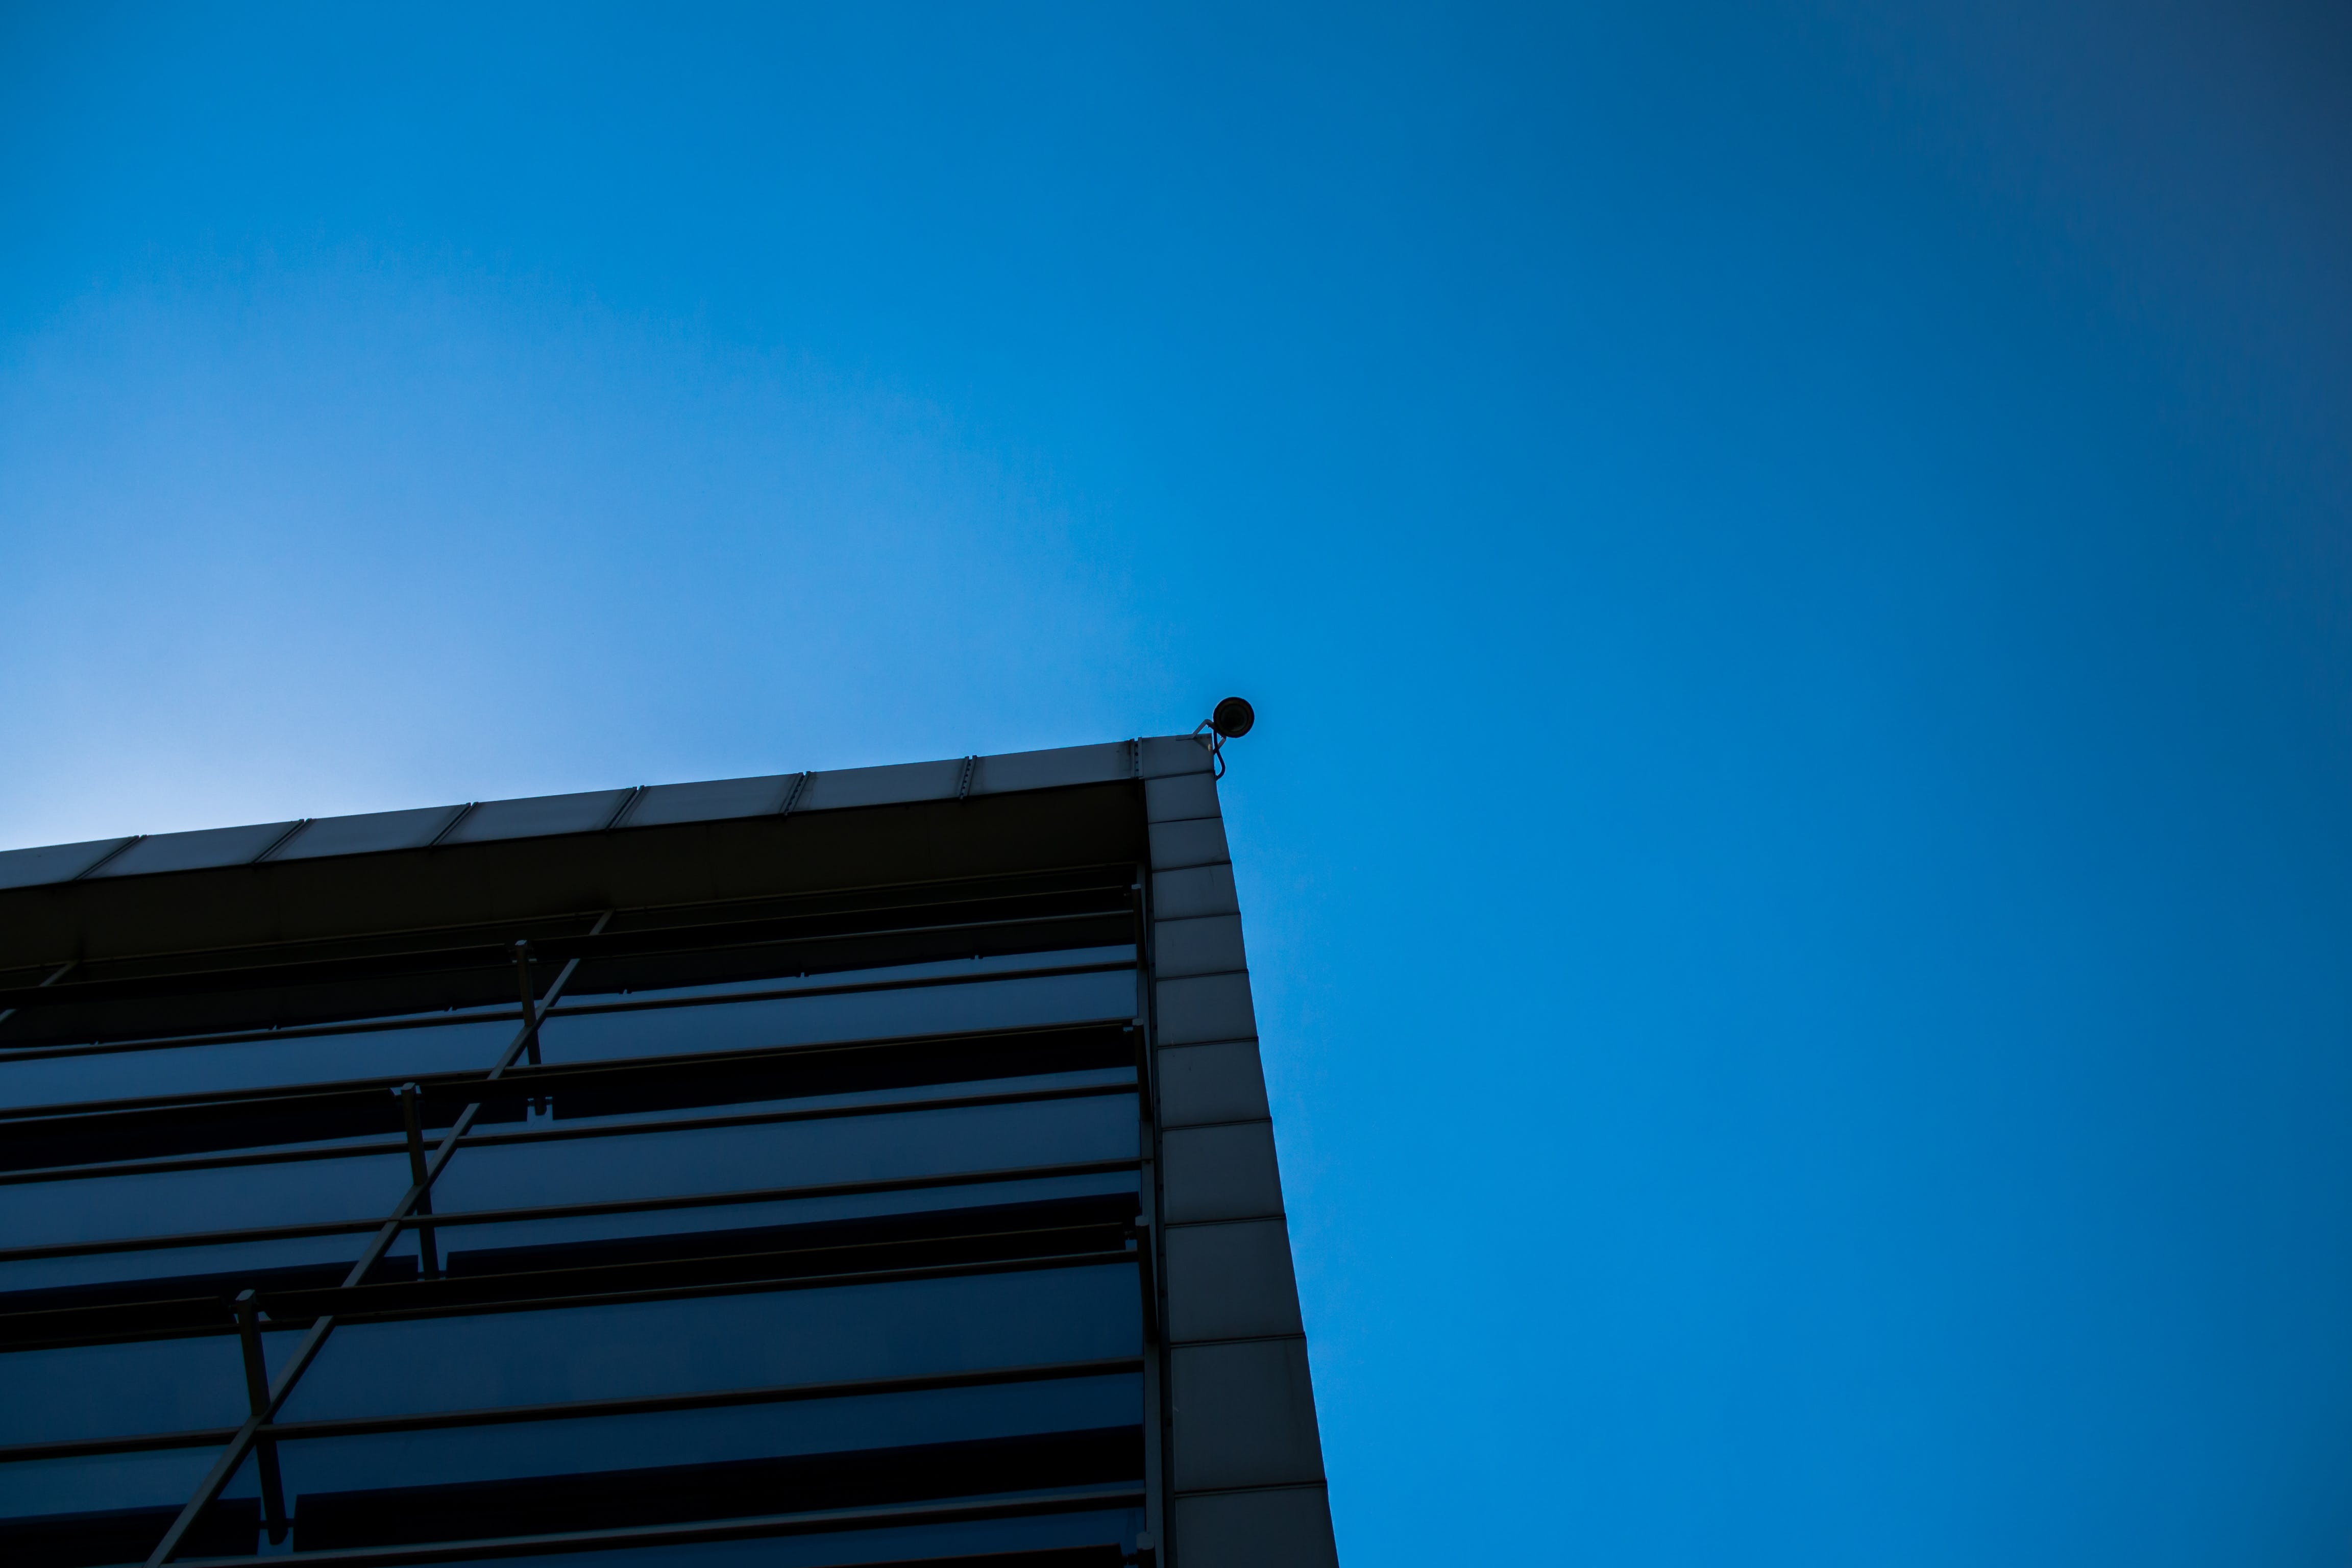 Free stock photo of architecture, blue sky, cinema, clear sky